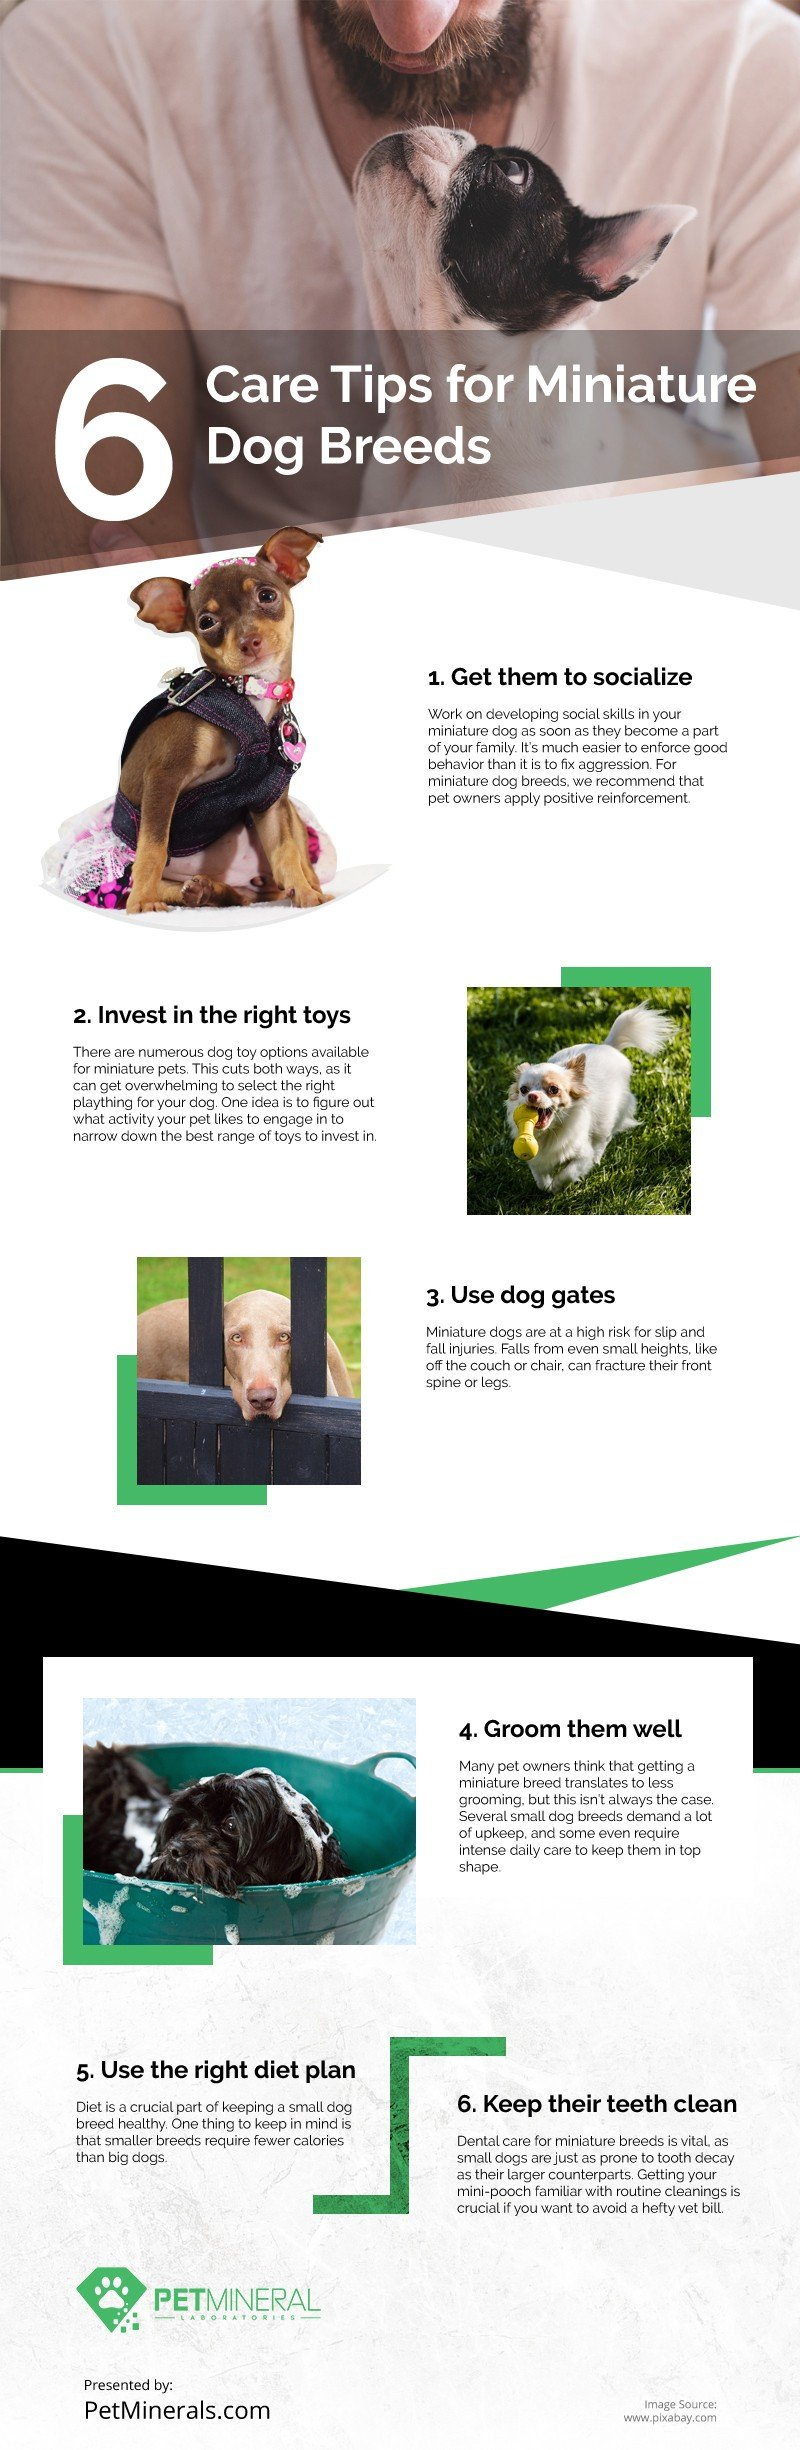 6 Care Tips for Miniature Dog Breeds [infographic]